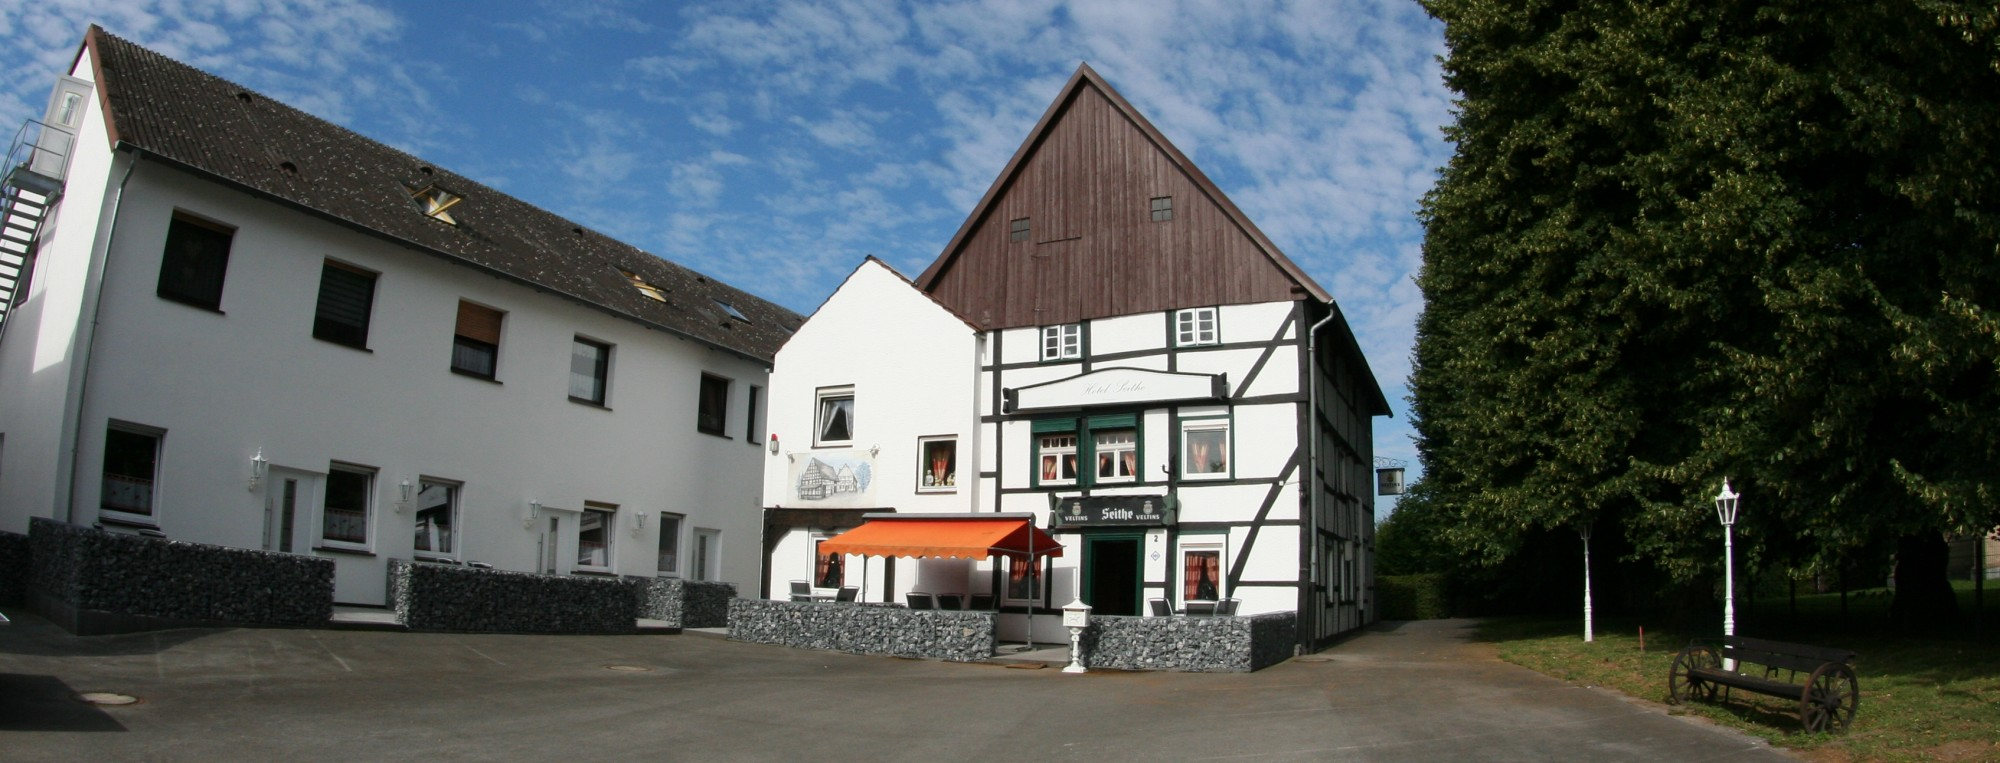 Hotel/Pension Seithe